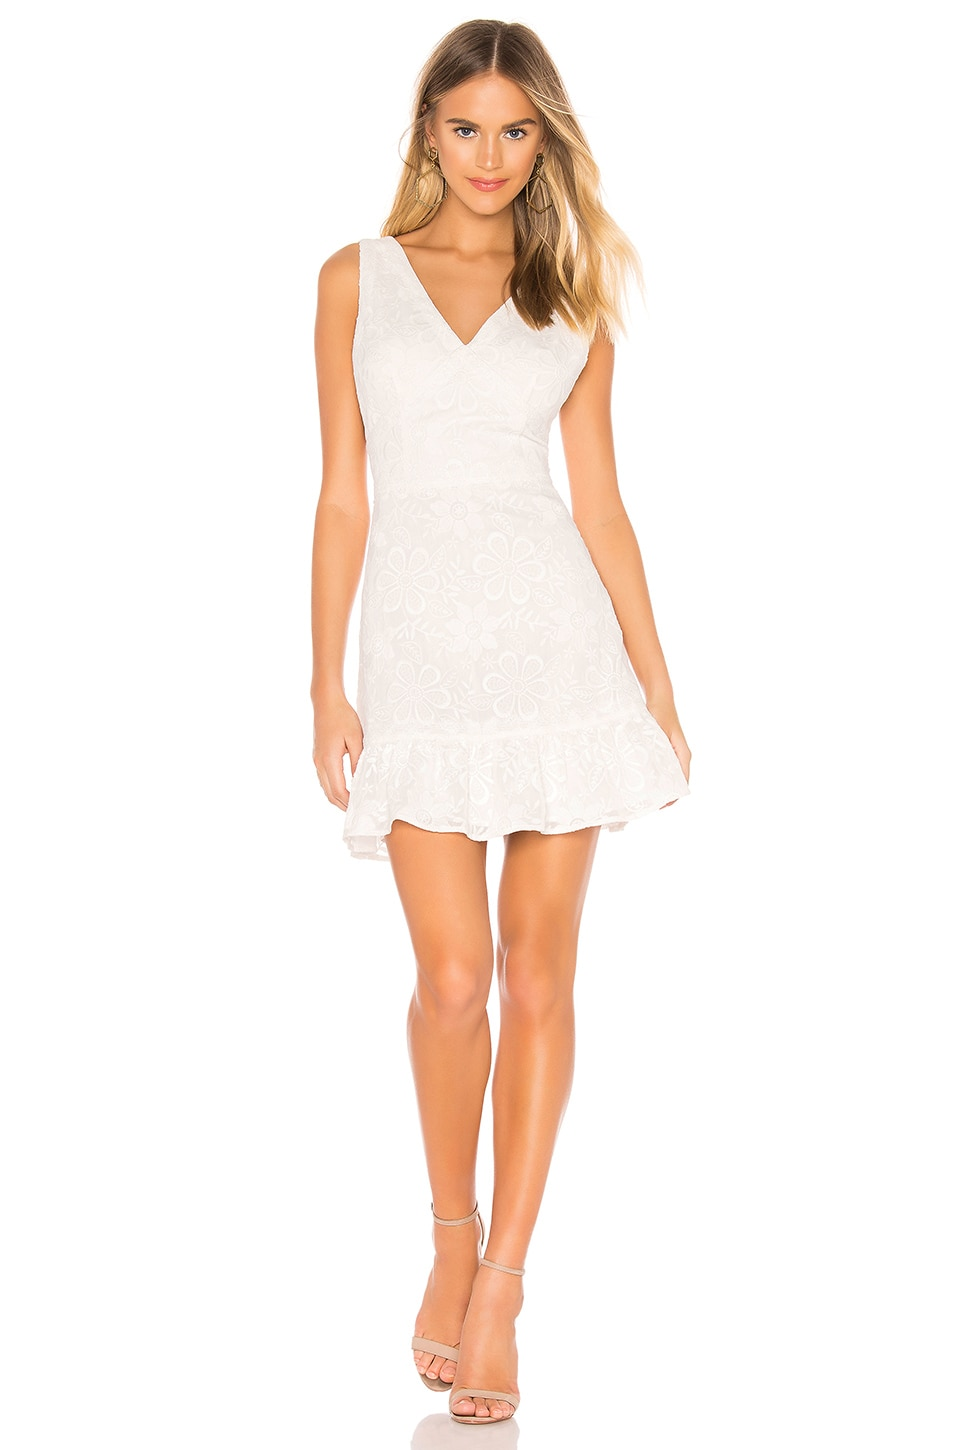 BB Dakota RSVP by BB Dakota Flower Power Dress in Ivory